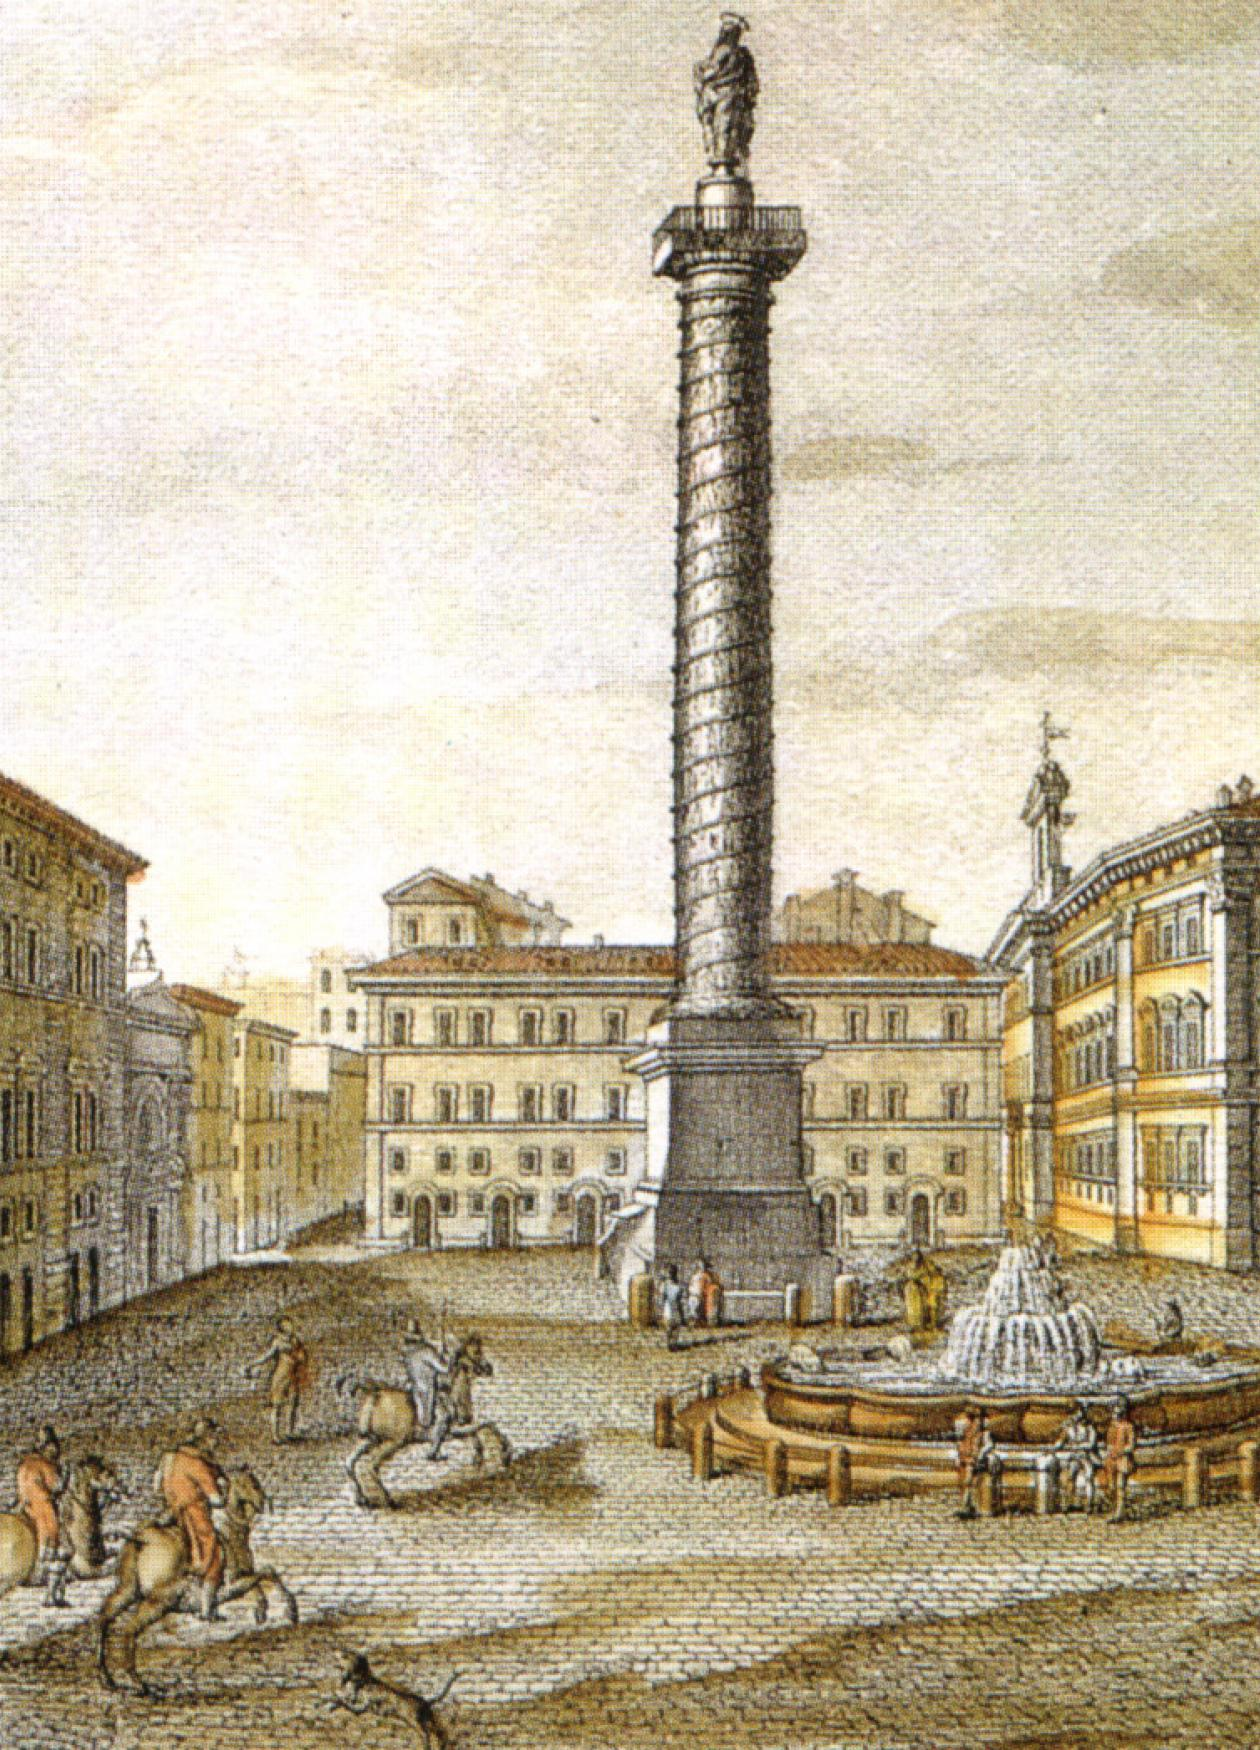 19th-century print of the fountain in the Piazza Colonna